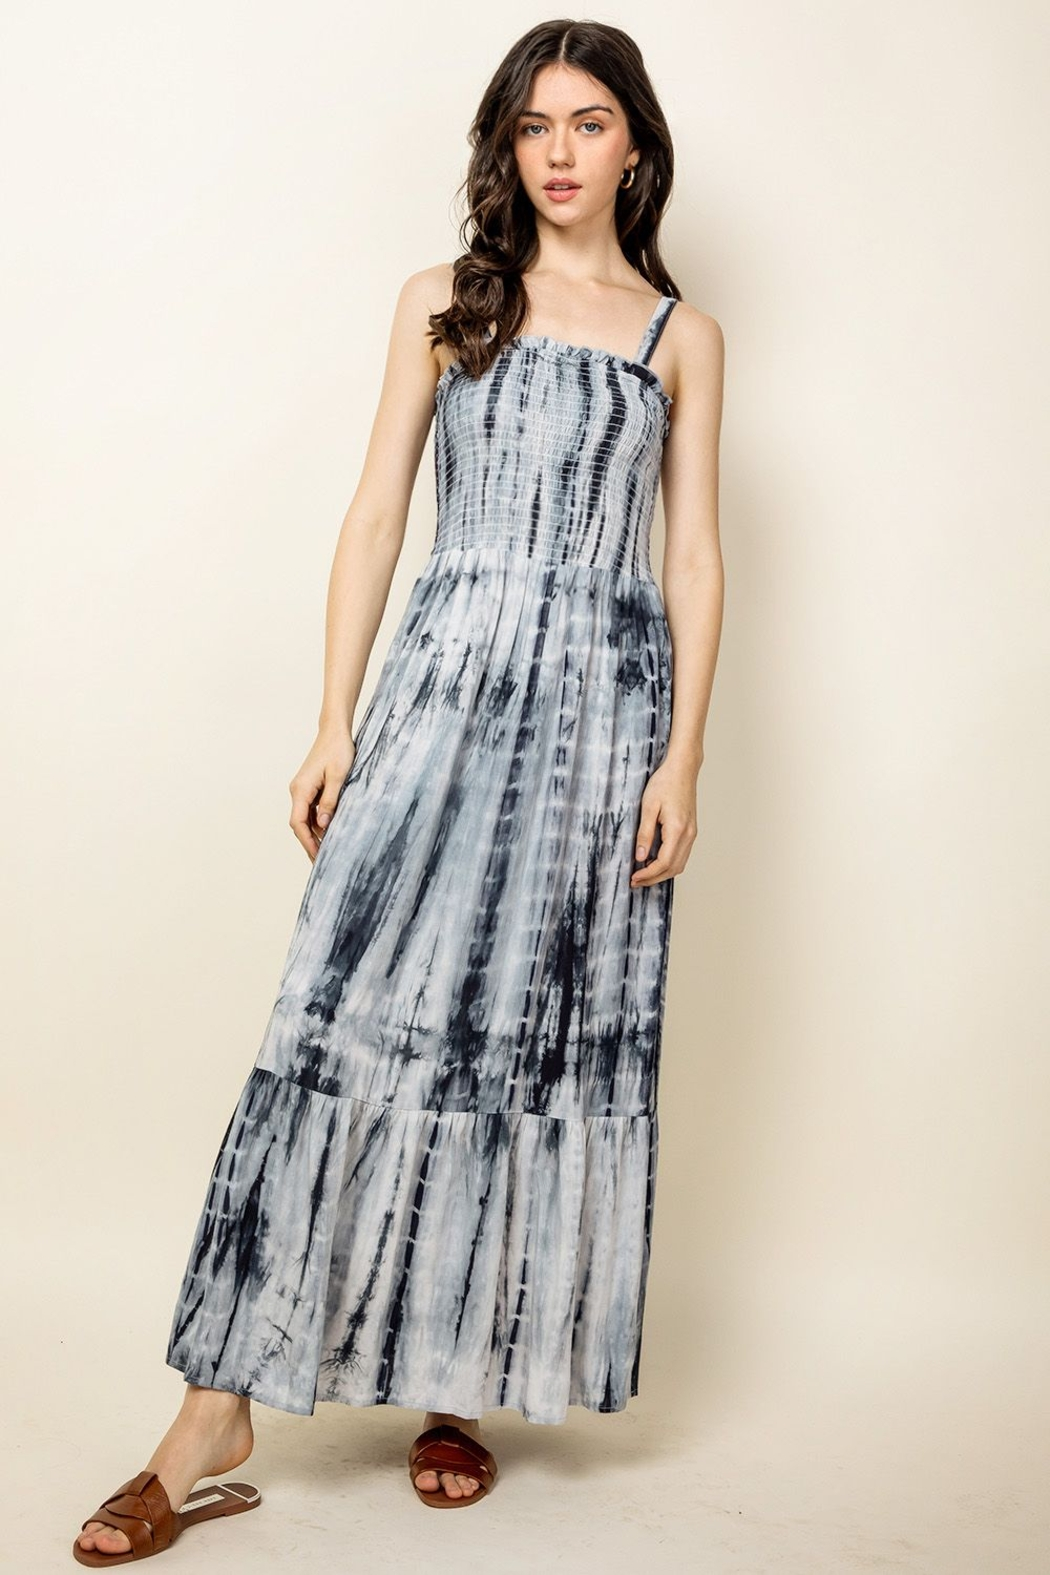 Thml TIE-DYED MAXI DRESS - Main Image